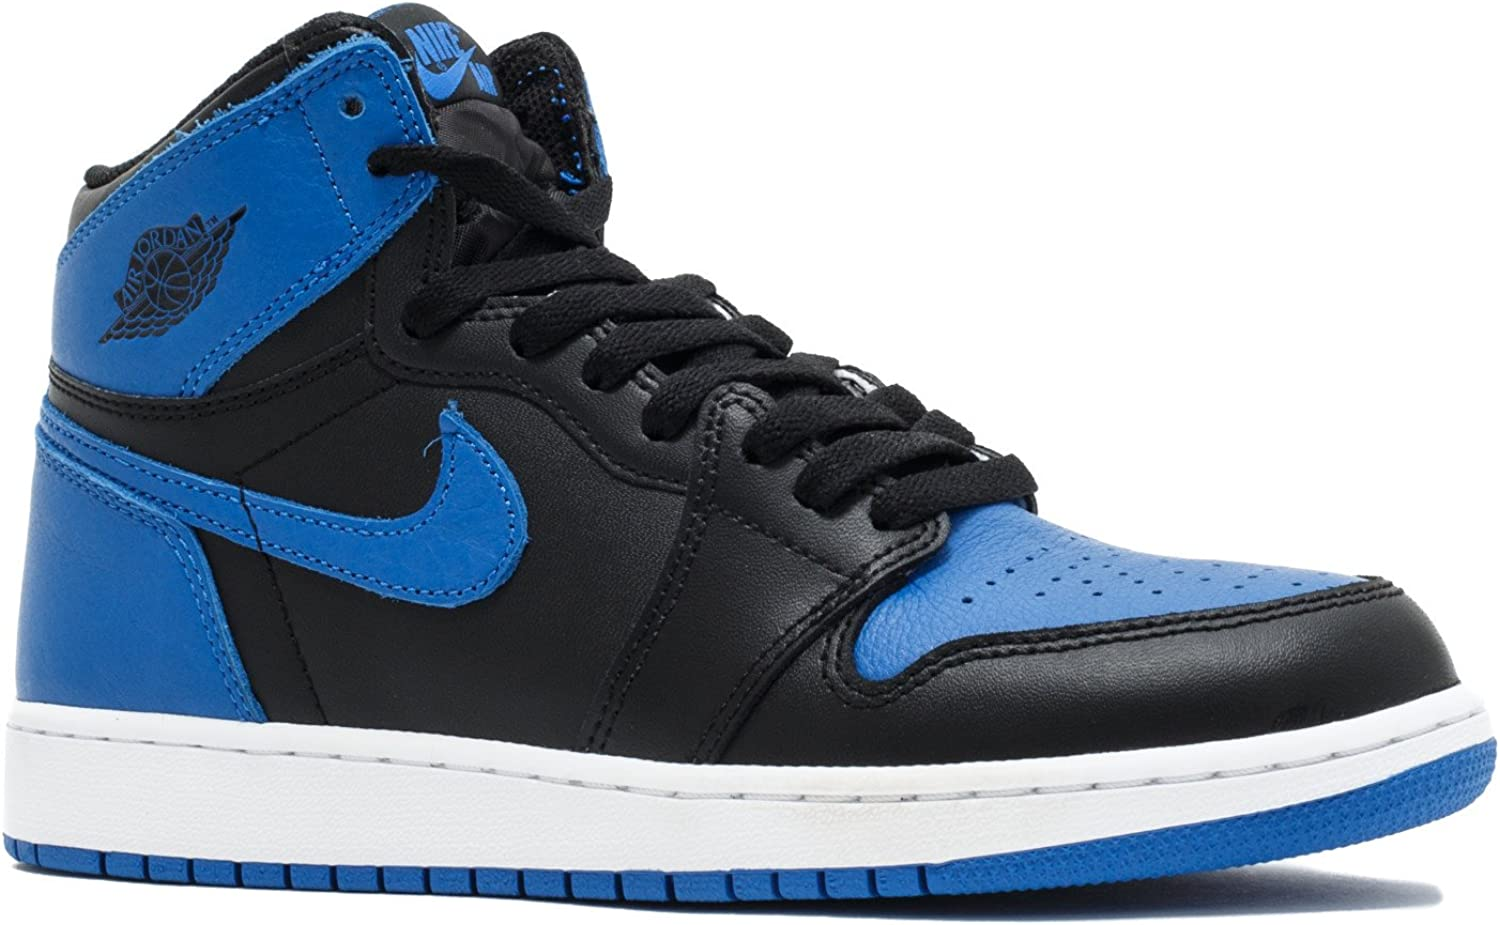 Nike Air Jordan 1 Retro GS OG BG Black Royal Blue Women Boys Girls 575441 007